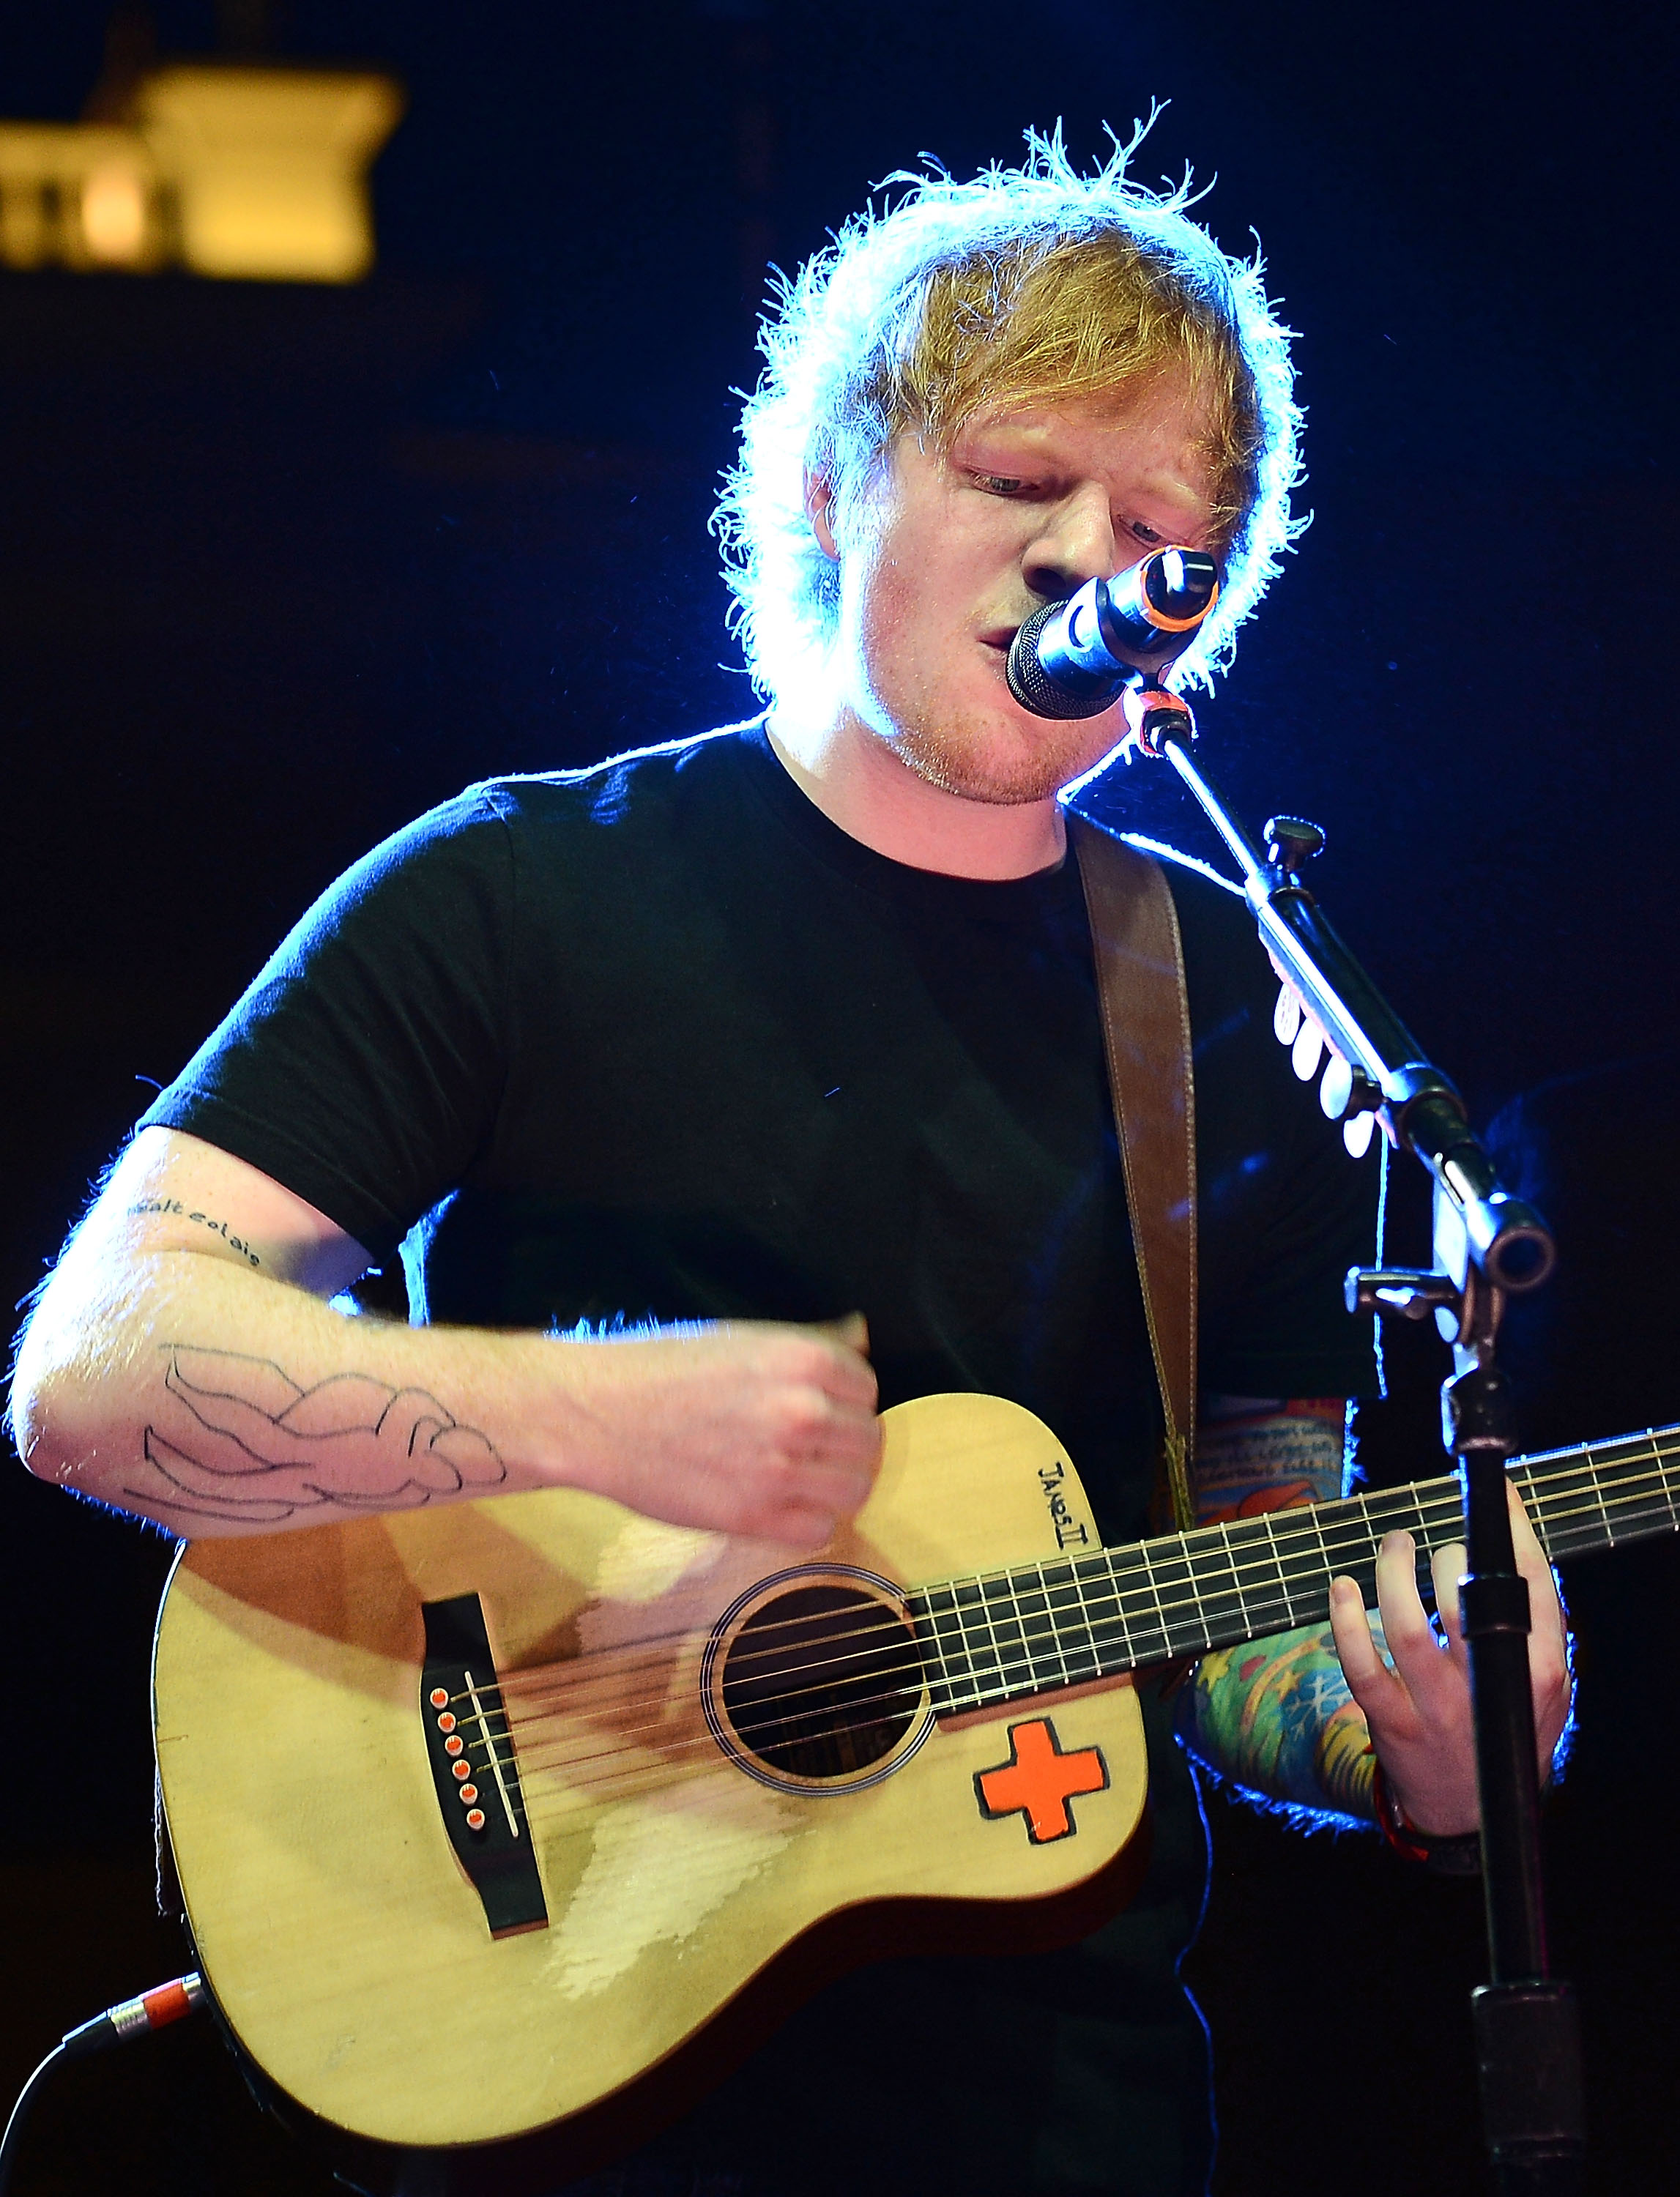 Ed Sheeran encourages kids to embrace